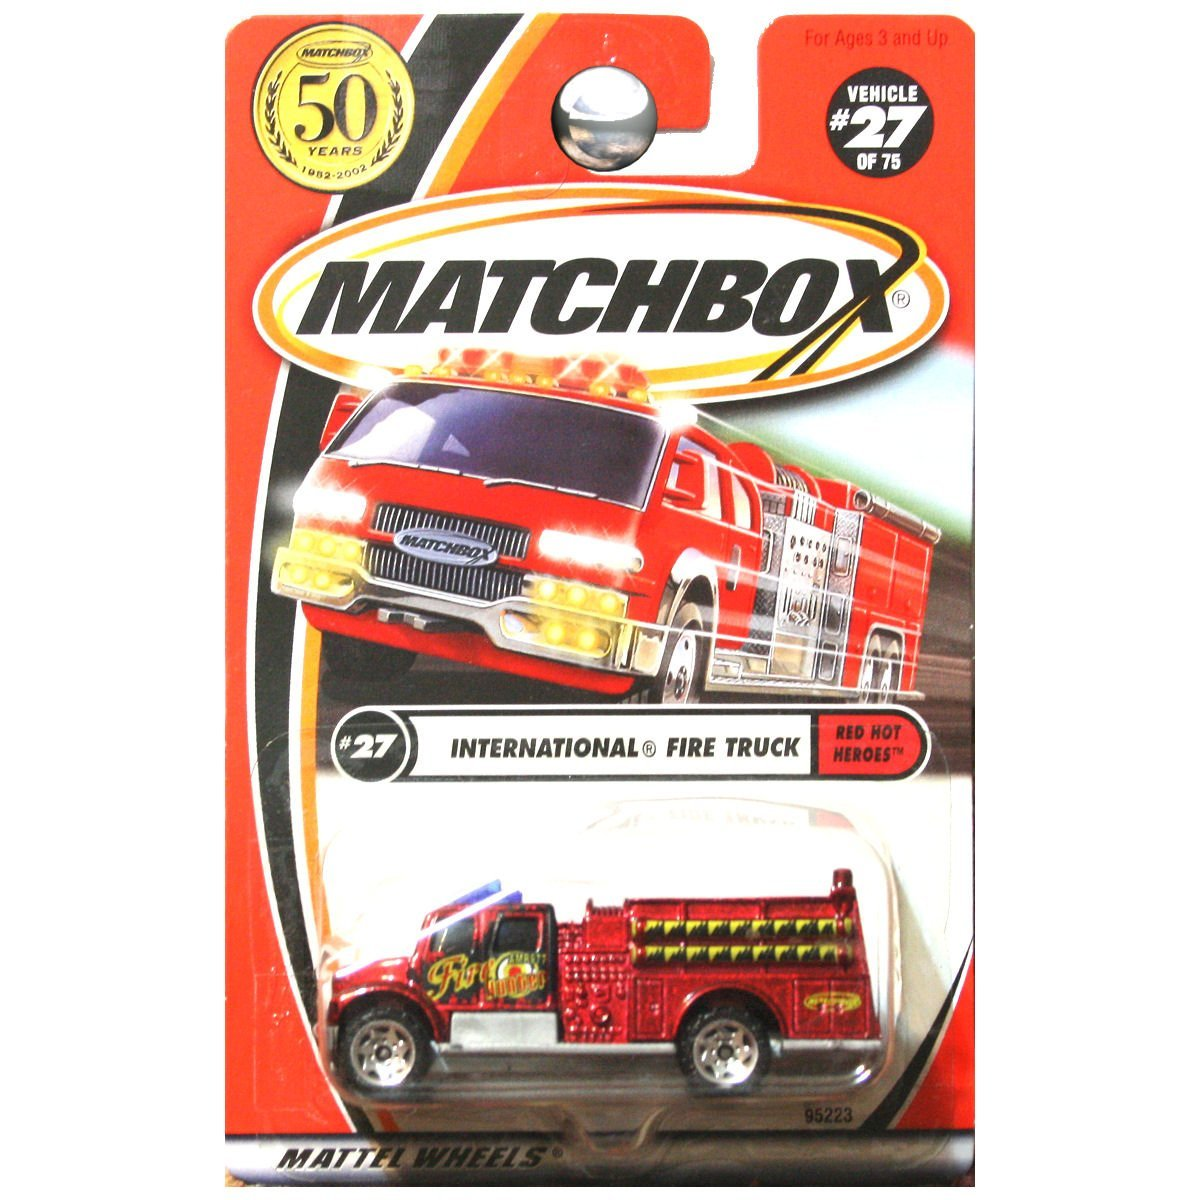 2002 Red Hot Heroes International Fire Truck Engine Red Metallic #27, By Matchbox by